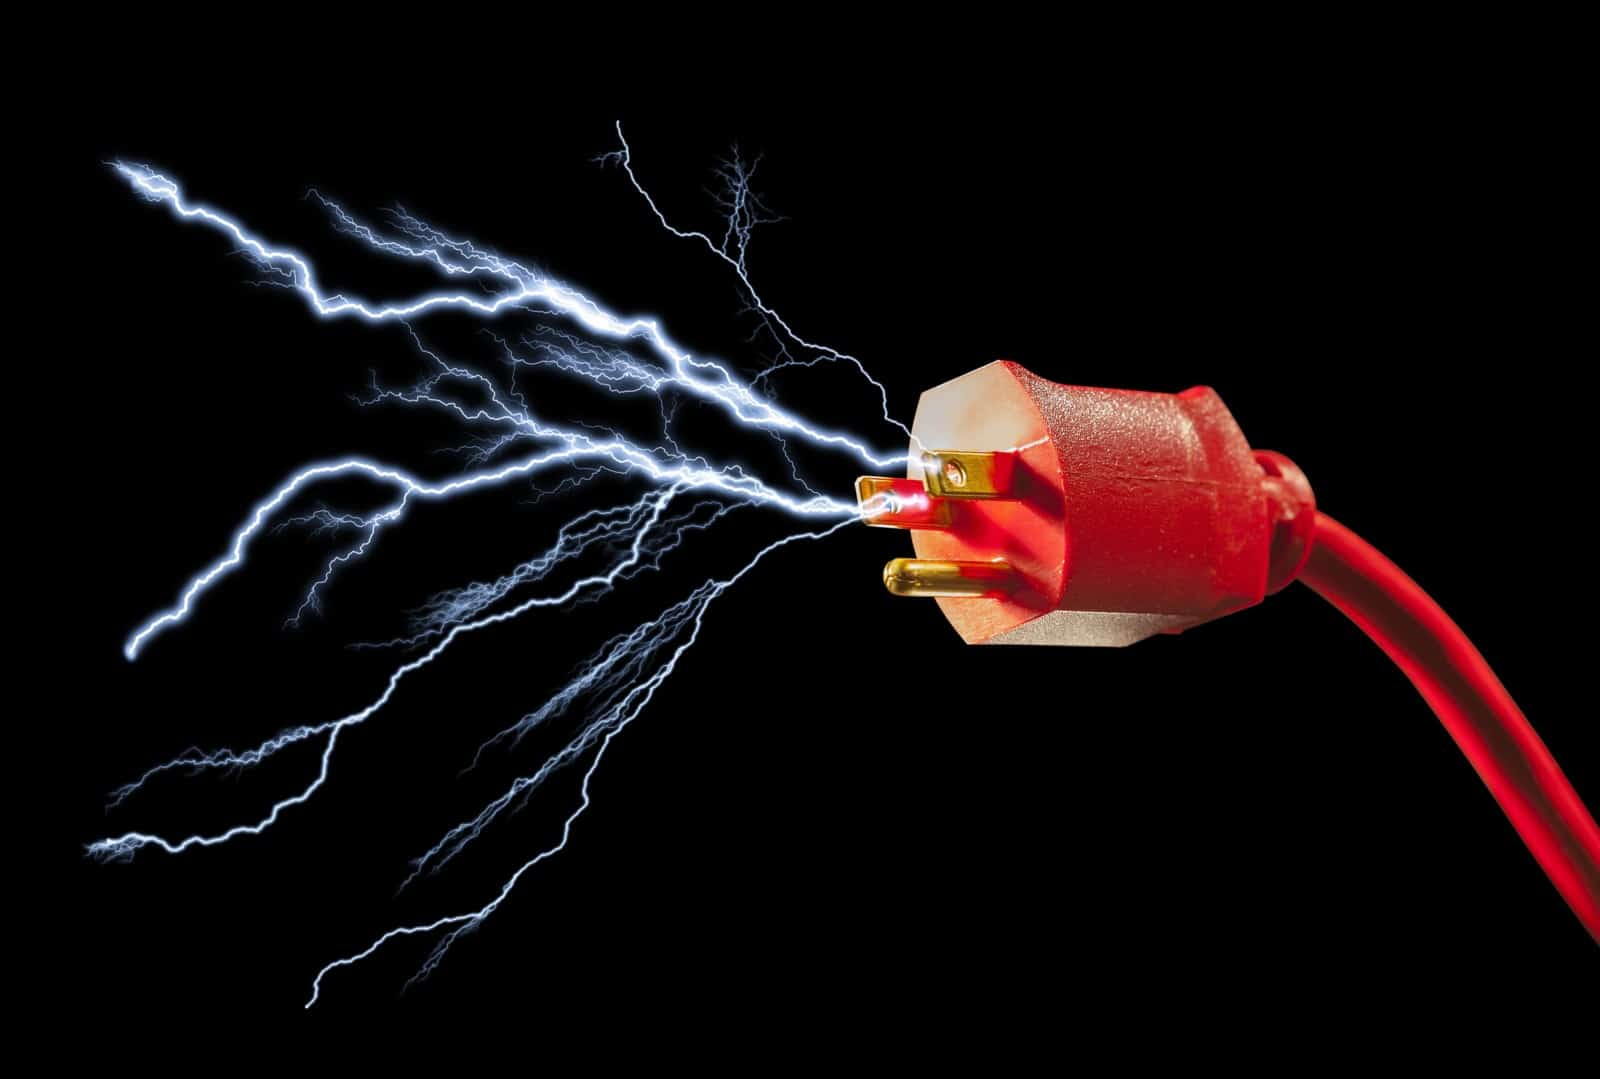 How To Treat Electric Shock In The Kitchen